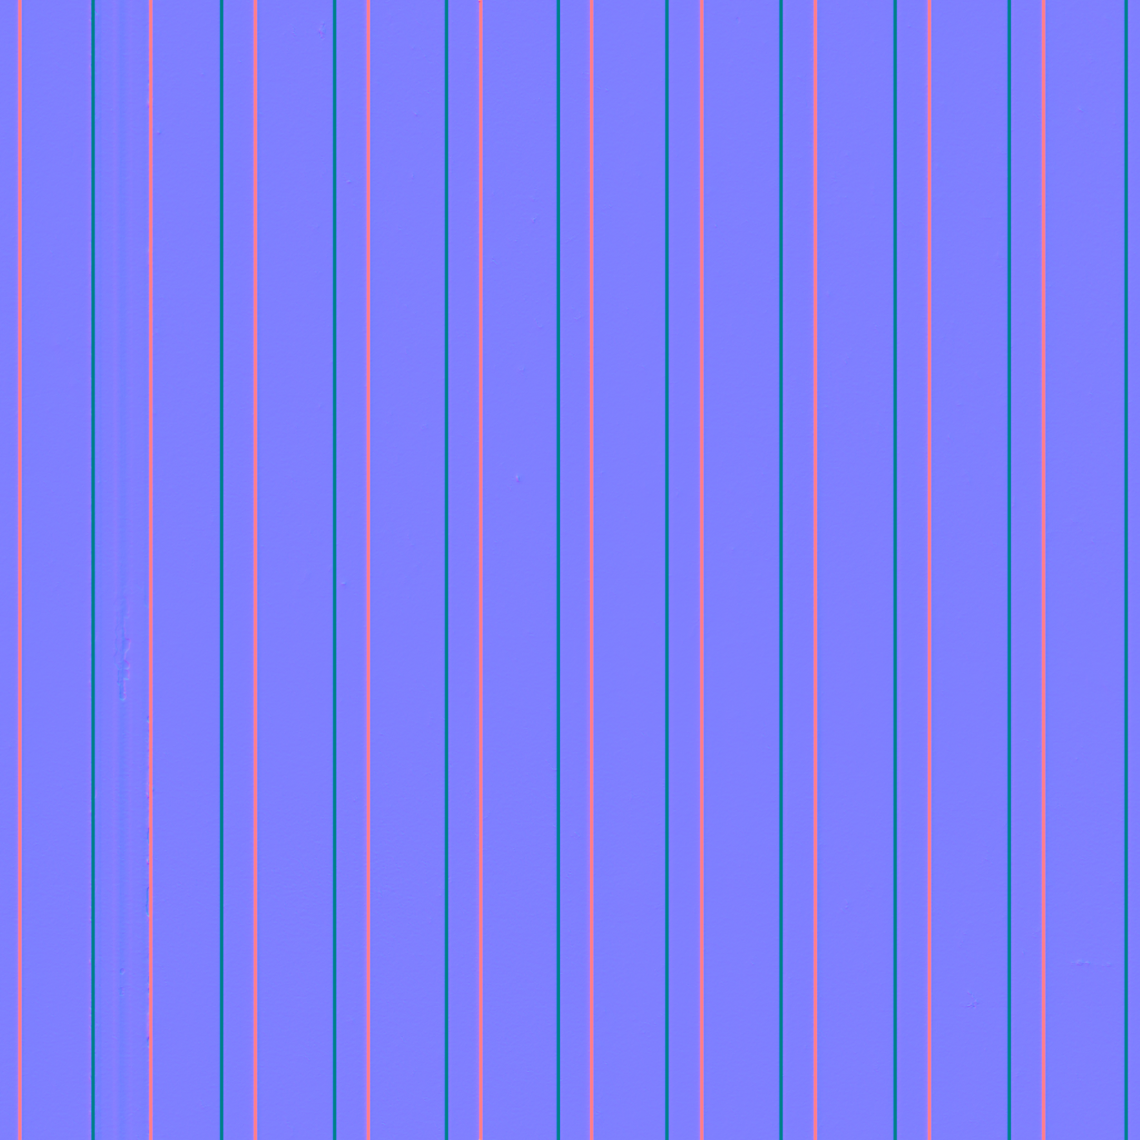 Corrugated Metal Texture Png - Corrugated-Metal-01-Normal - Good Textures